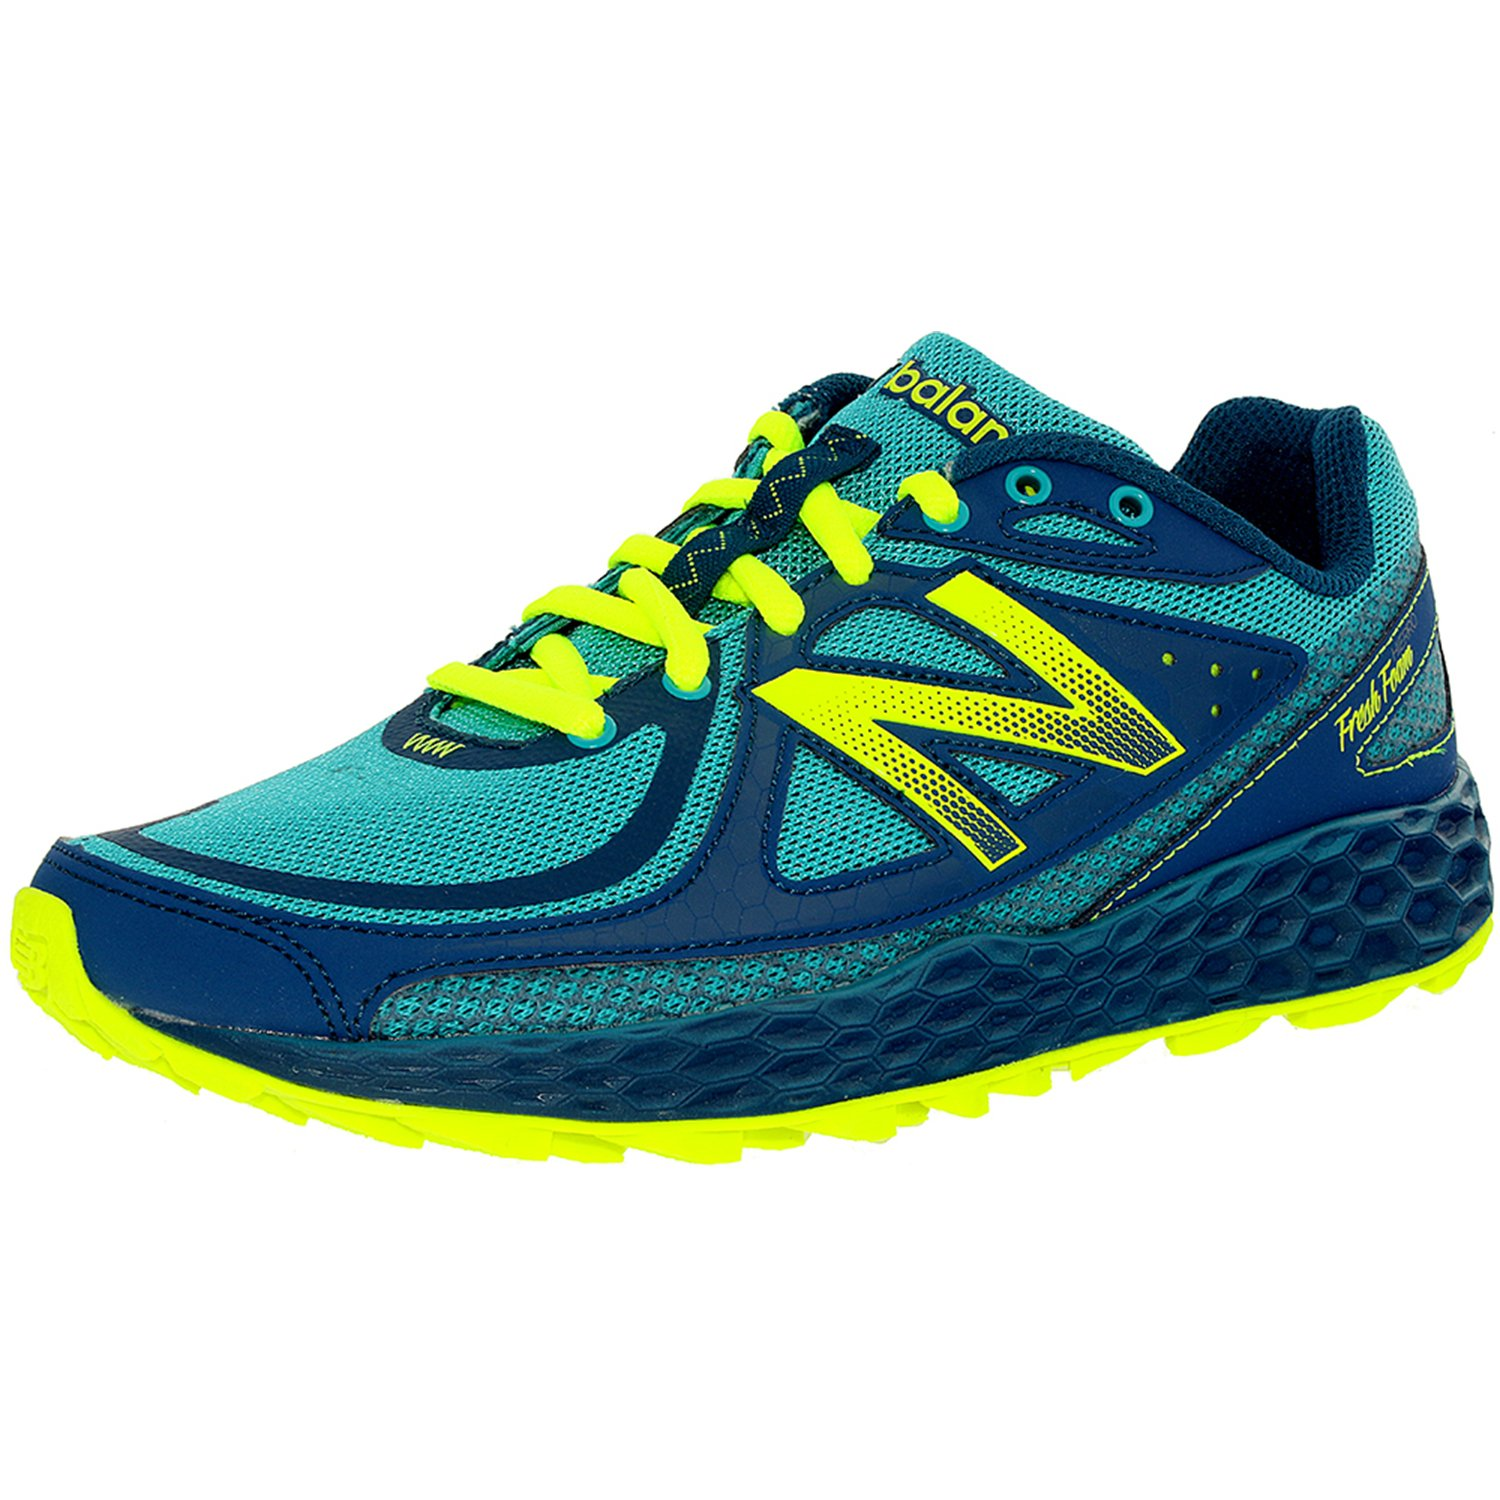 New Balance Women's Trail Running Ankle-High Synthetic Running Shoe by New Balance